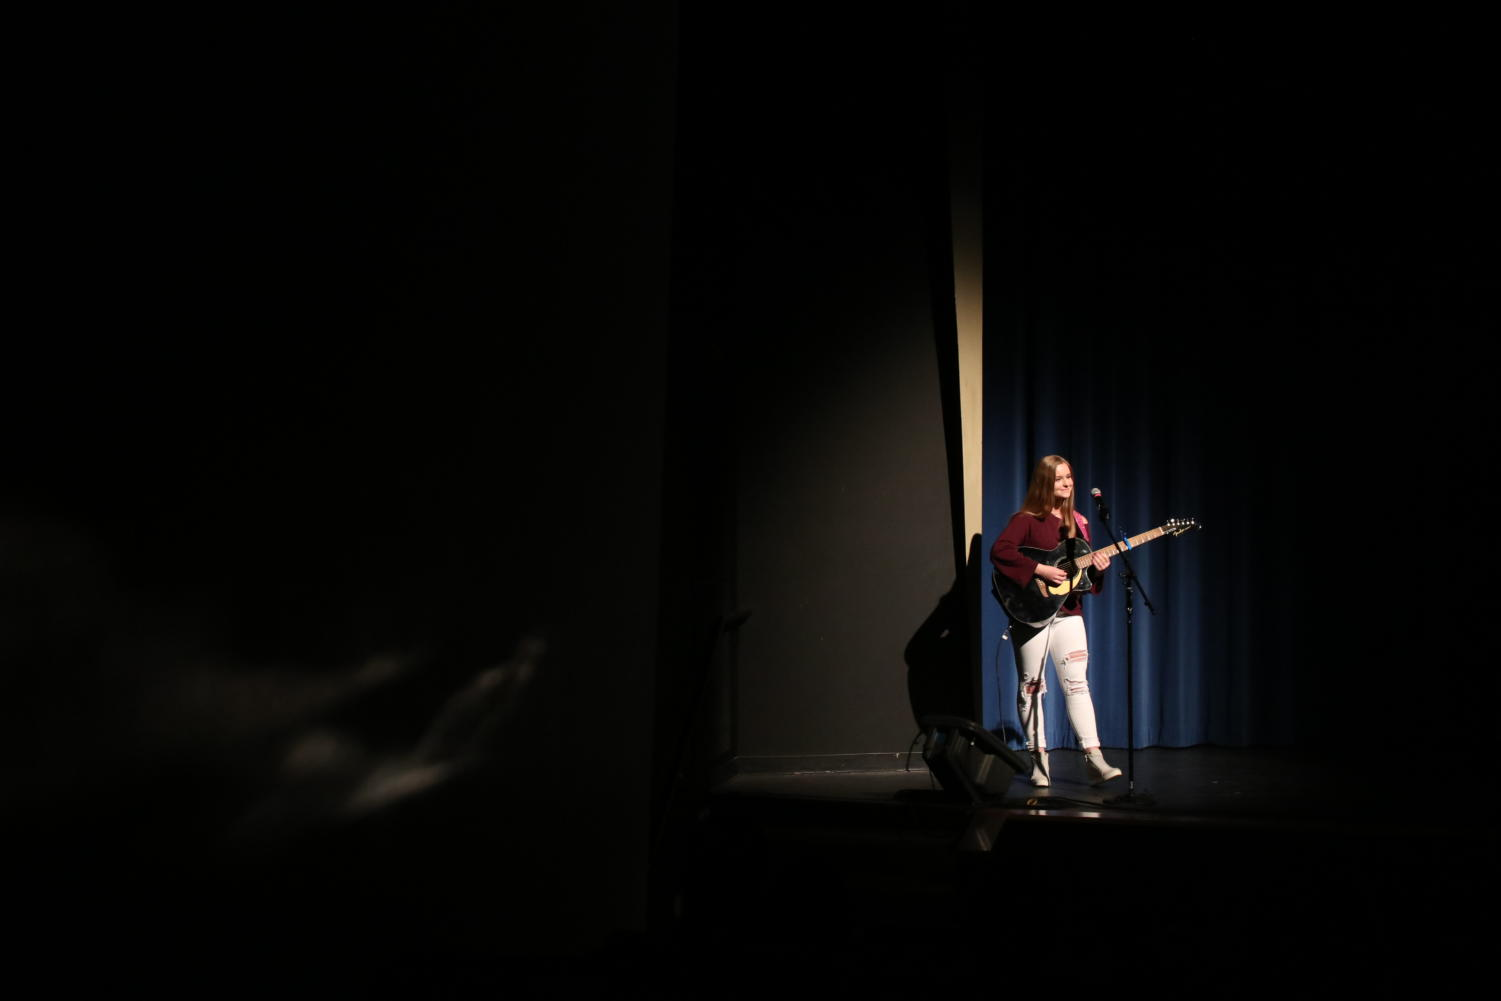 Sarah+Henderson%2C+sophomore%2C+sings+and+plays+guitar+for+Ed+Sheeran%E2%80%99s+%E2%80%9CI+See+Fire.%E2%80%9D+She+said+she+has+been+performing+at+talent+shows+ever+since+kindergarten.+%E2%80%9CI+feel+like+talent+shows+allow+everyone+to+showcase+their+own+individual+strengths%2C%E2%80%9D+Henderson+said.